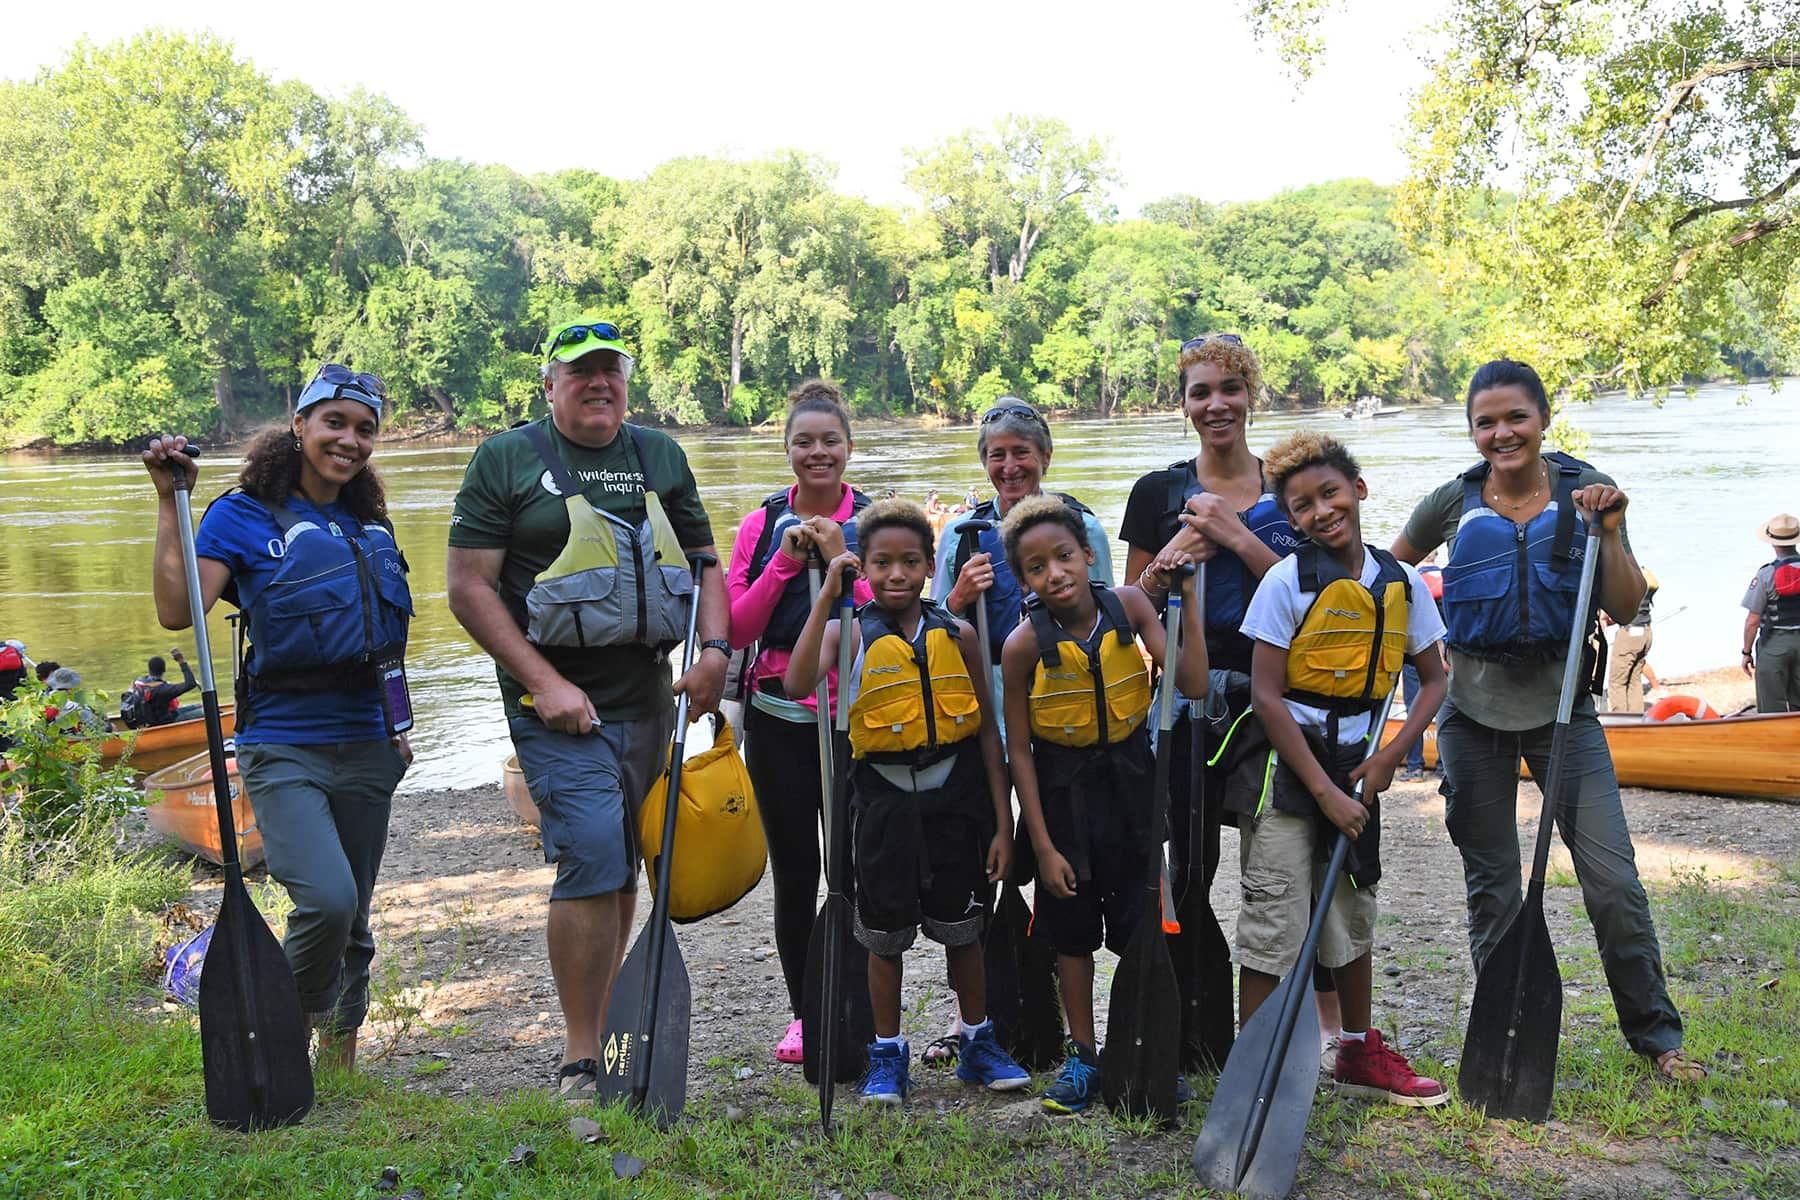 Founder Greg Lais on the banks of the Mississippi River with Sally Jewell and students